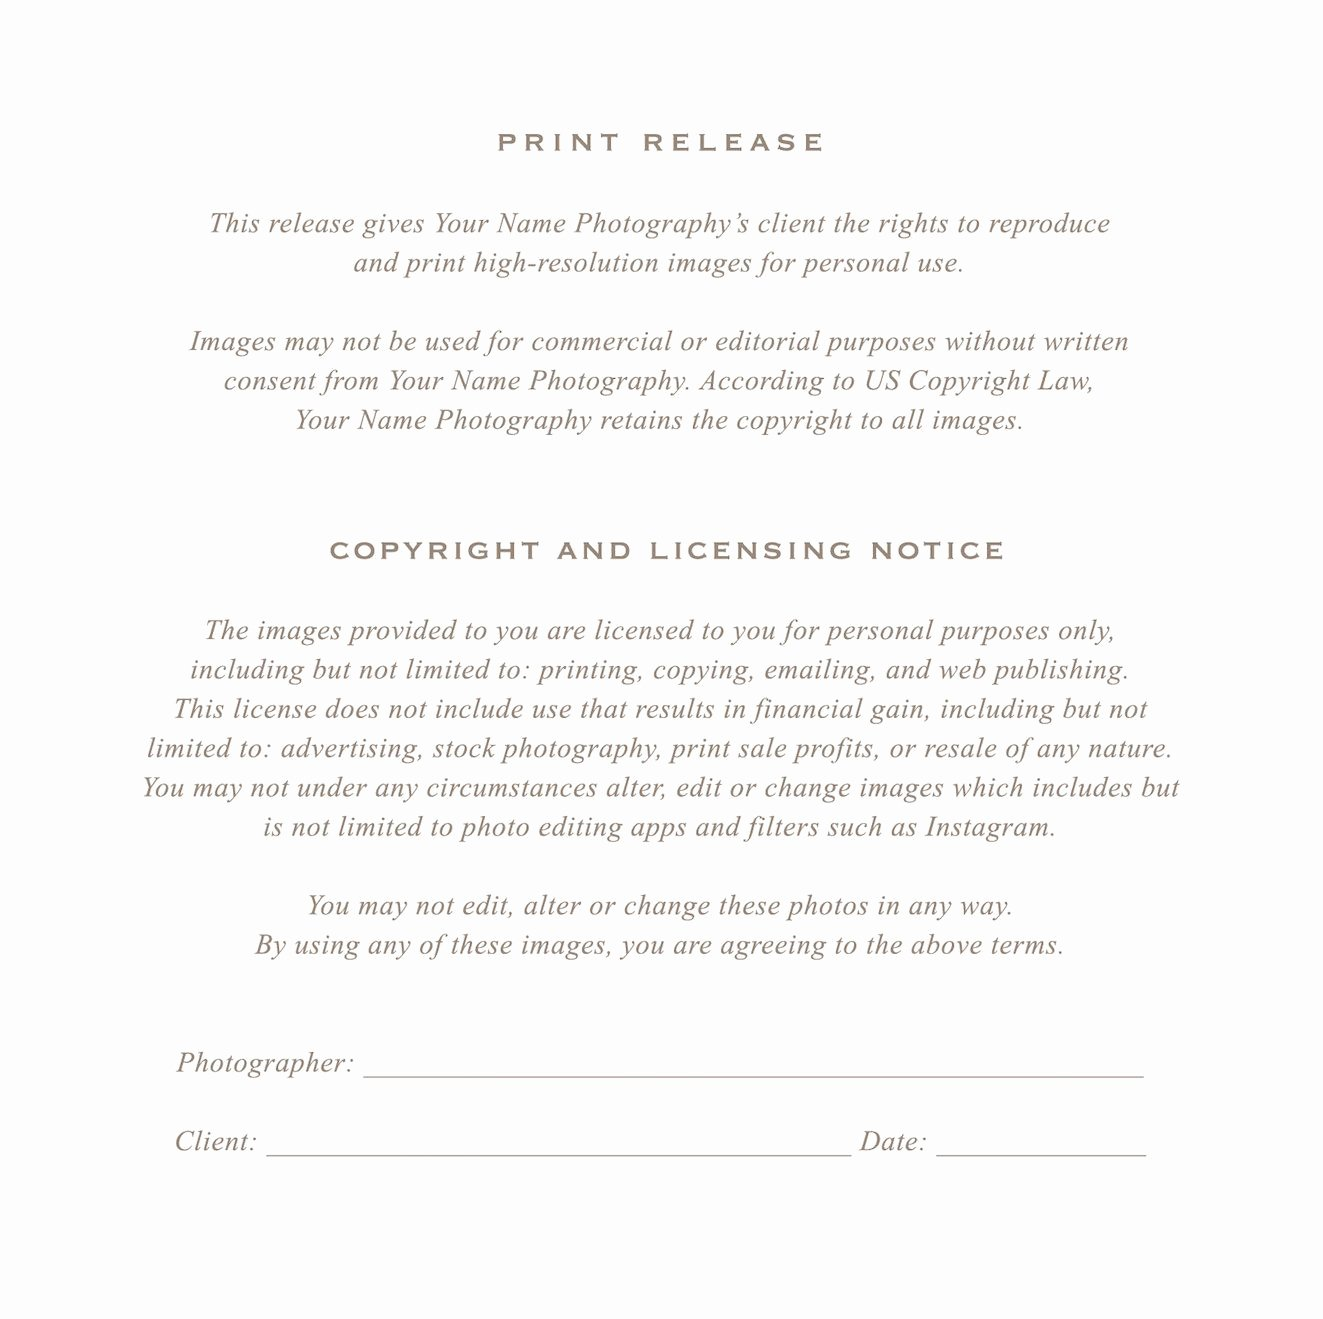 Client Print Release form Template New Grapher Print Release form by